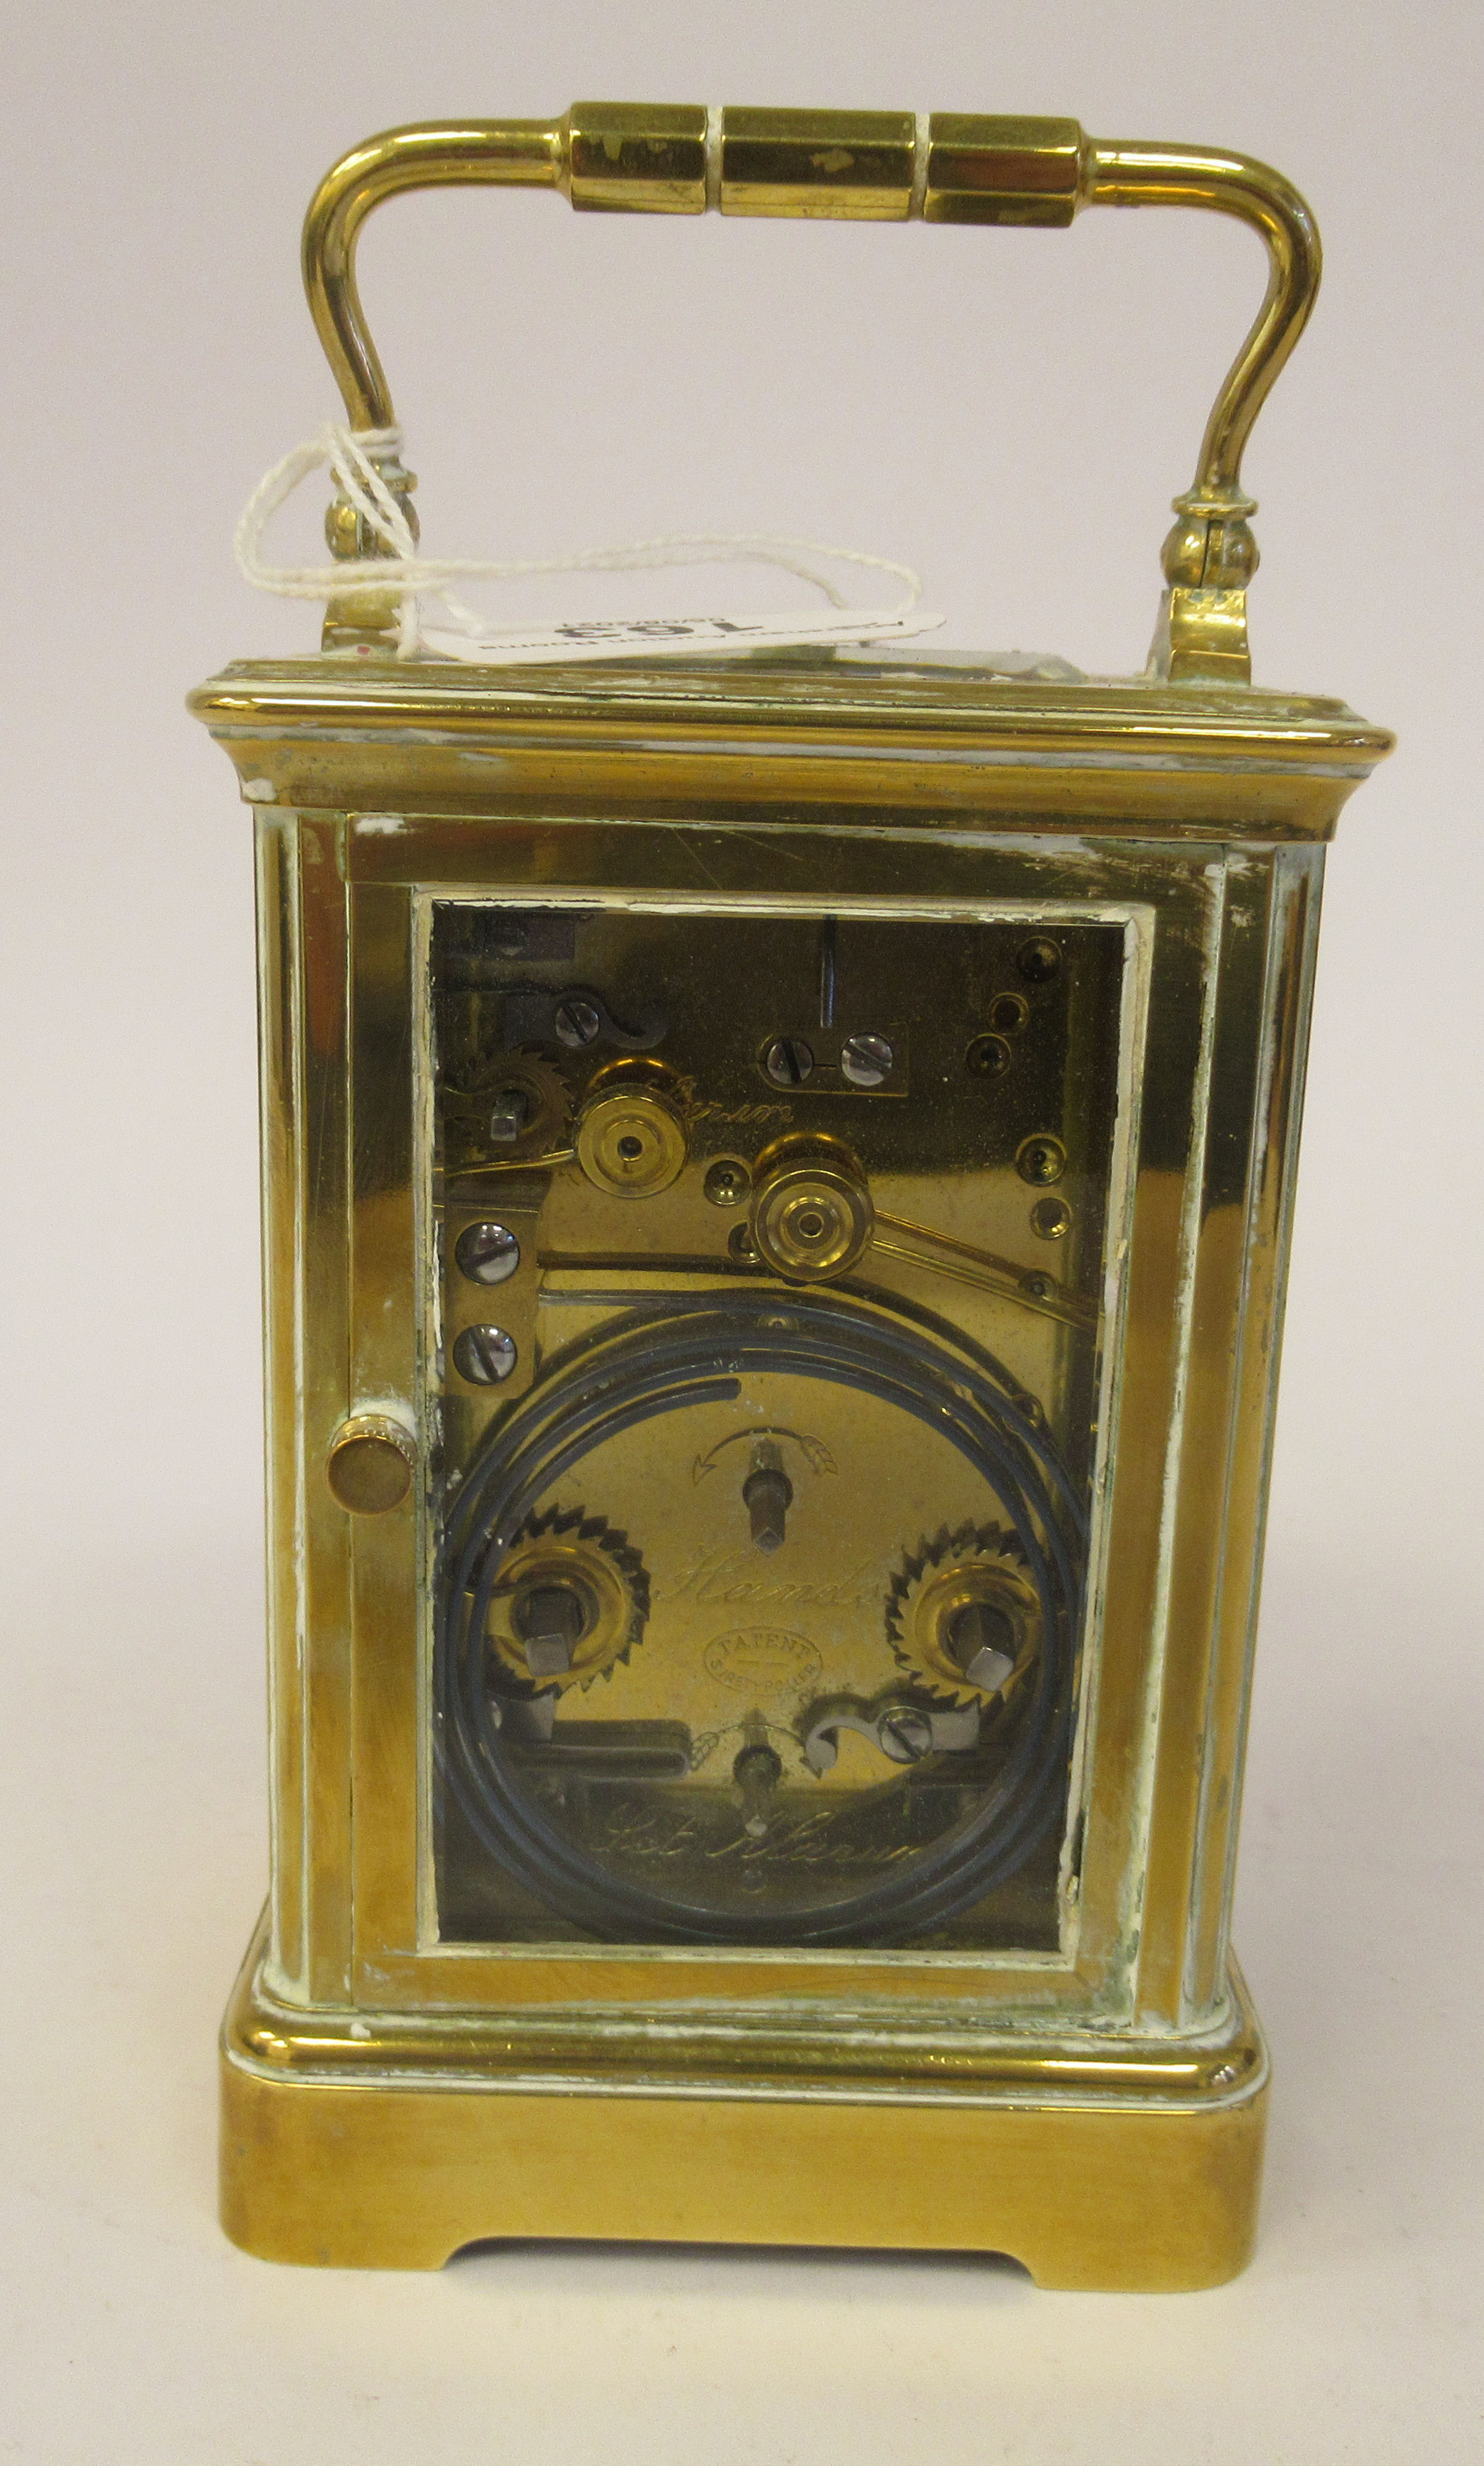 An early 20thC brass cased carriage clock with bevelled glass panels, a folding top handle, on a - Image 4 of 9